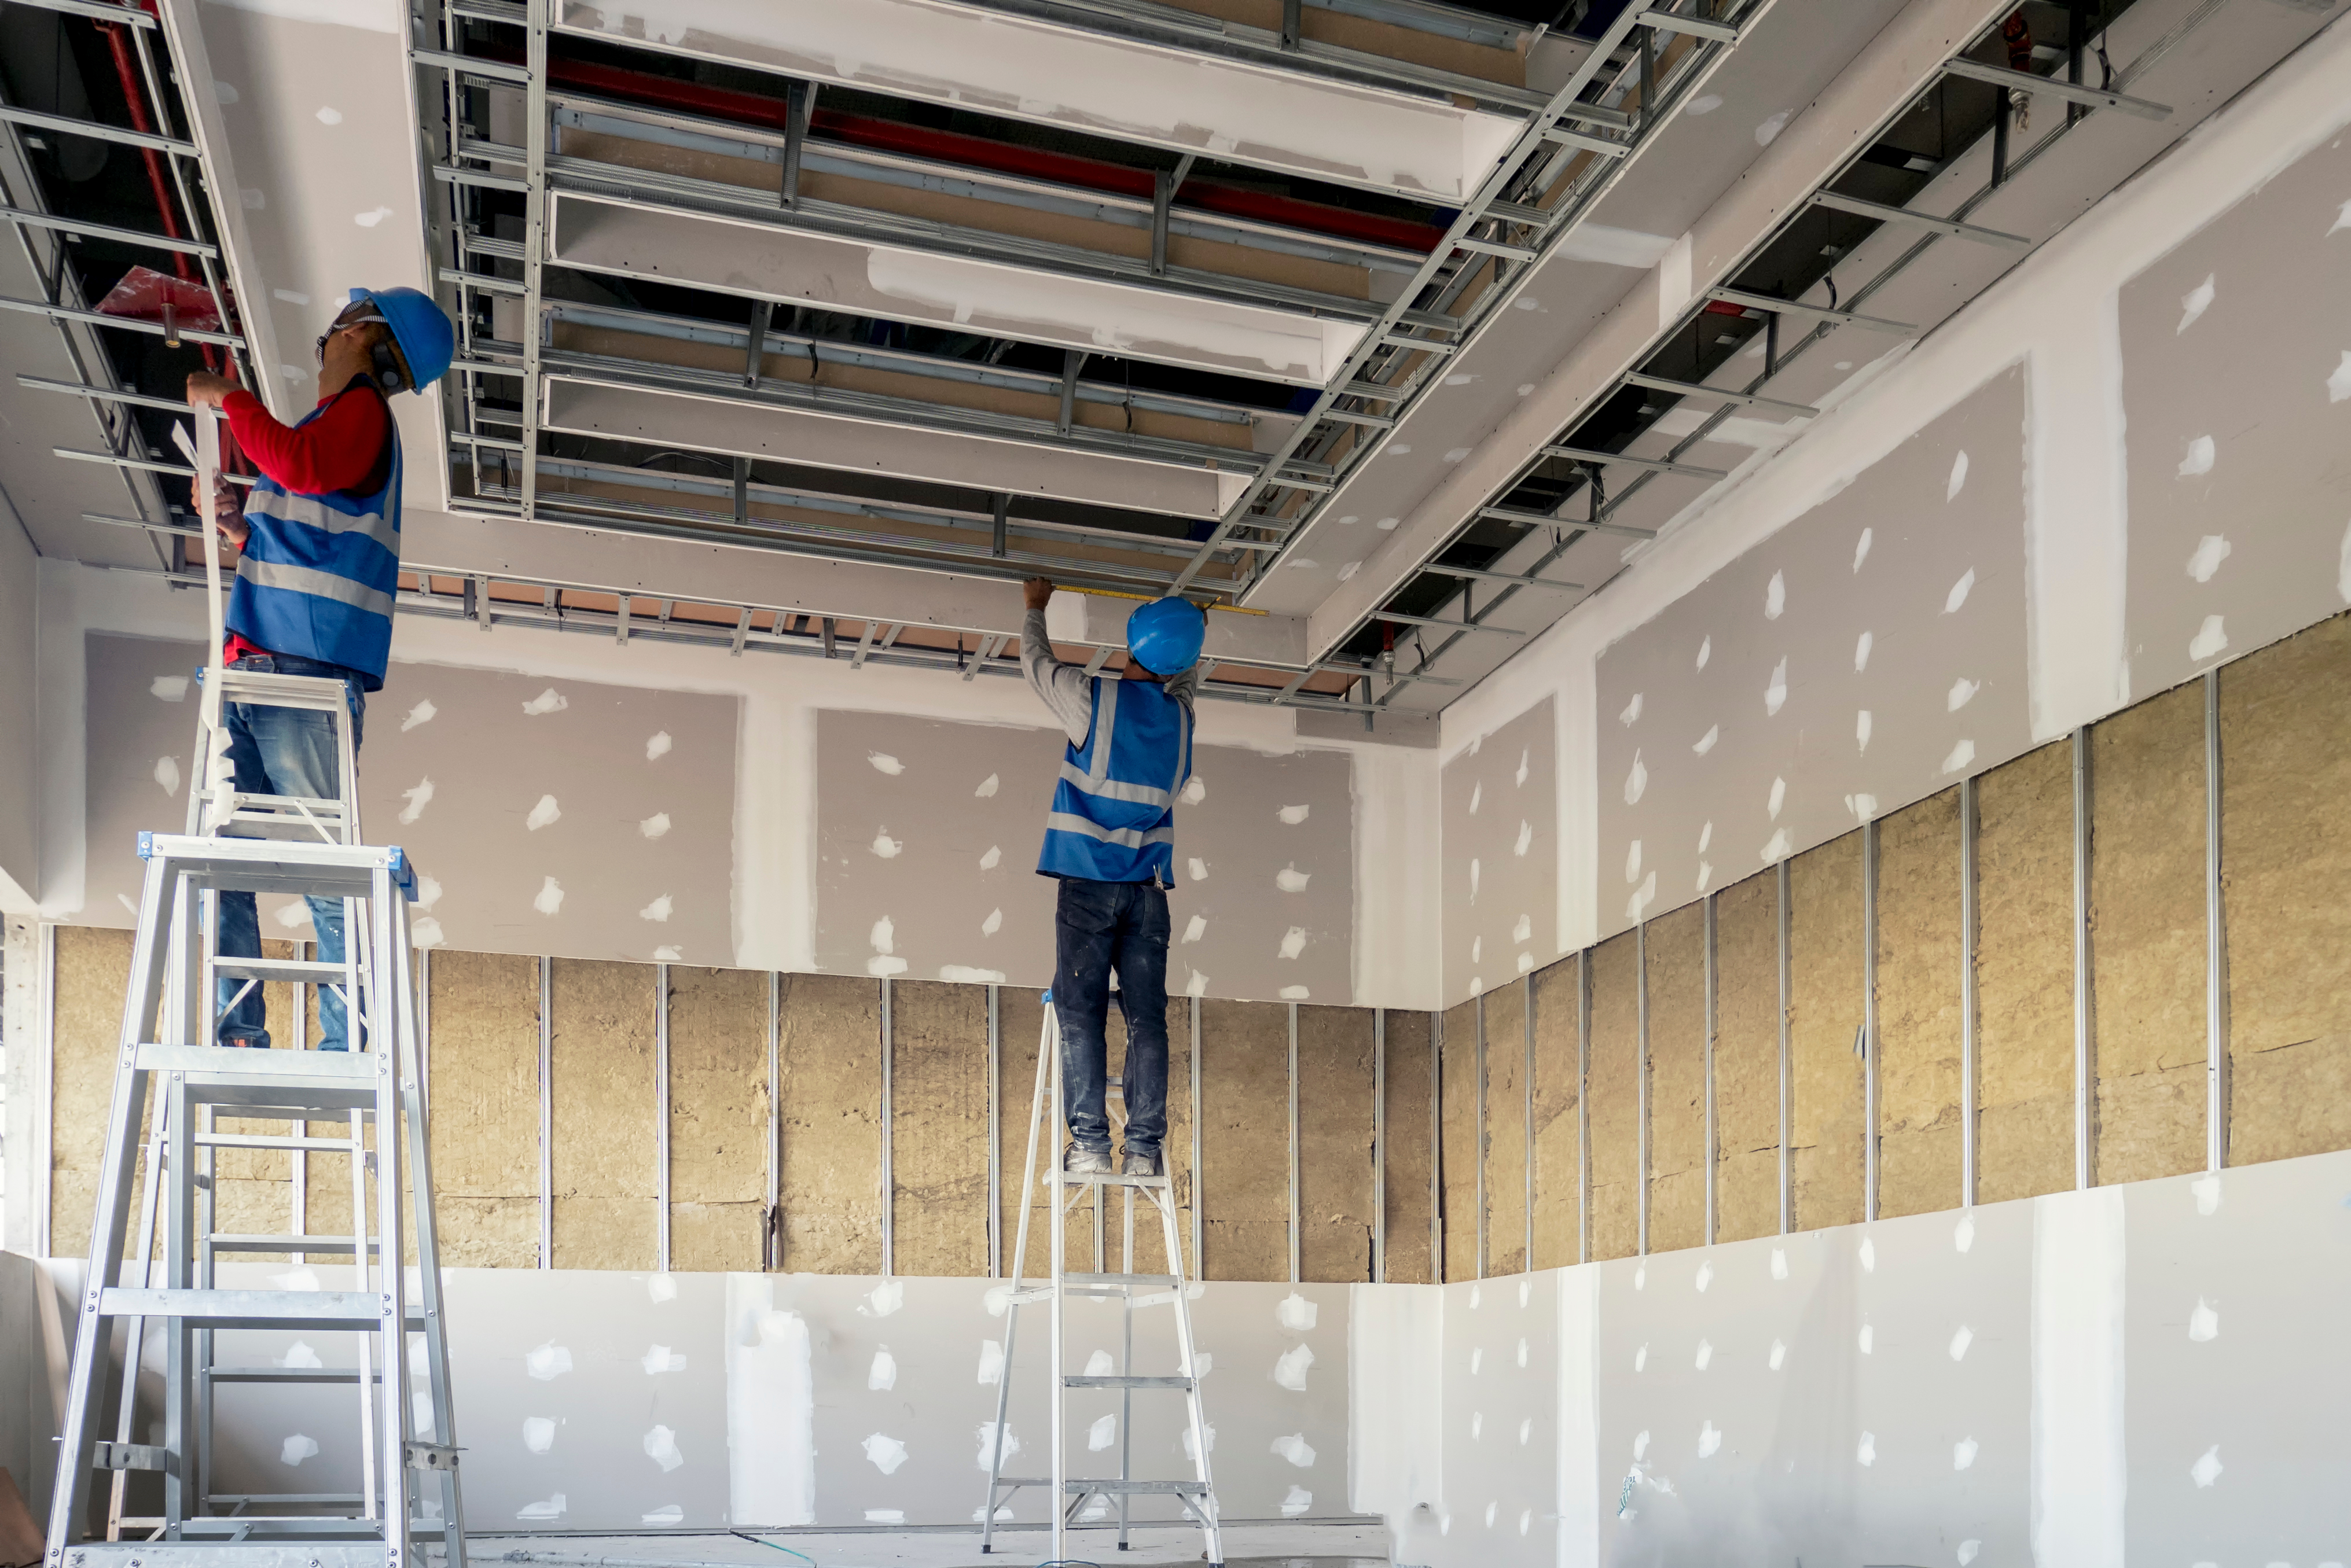 Construction worker installation ceiling